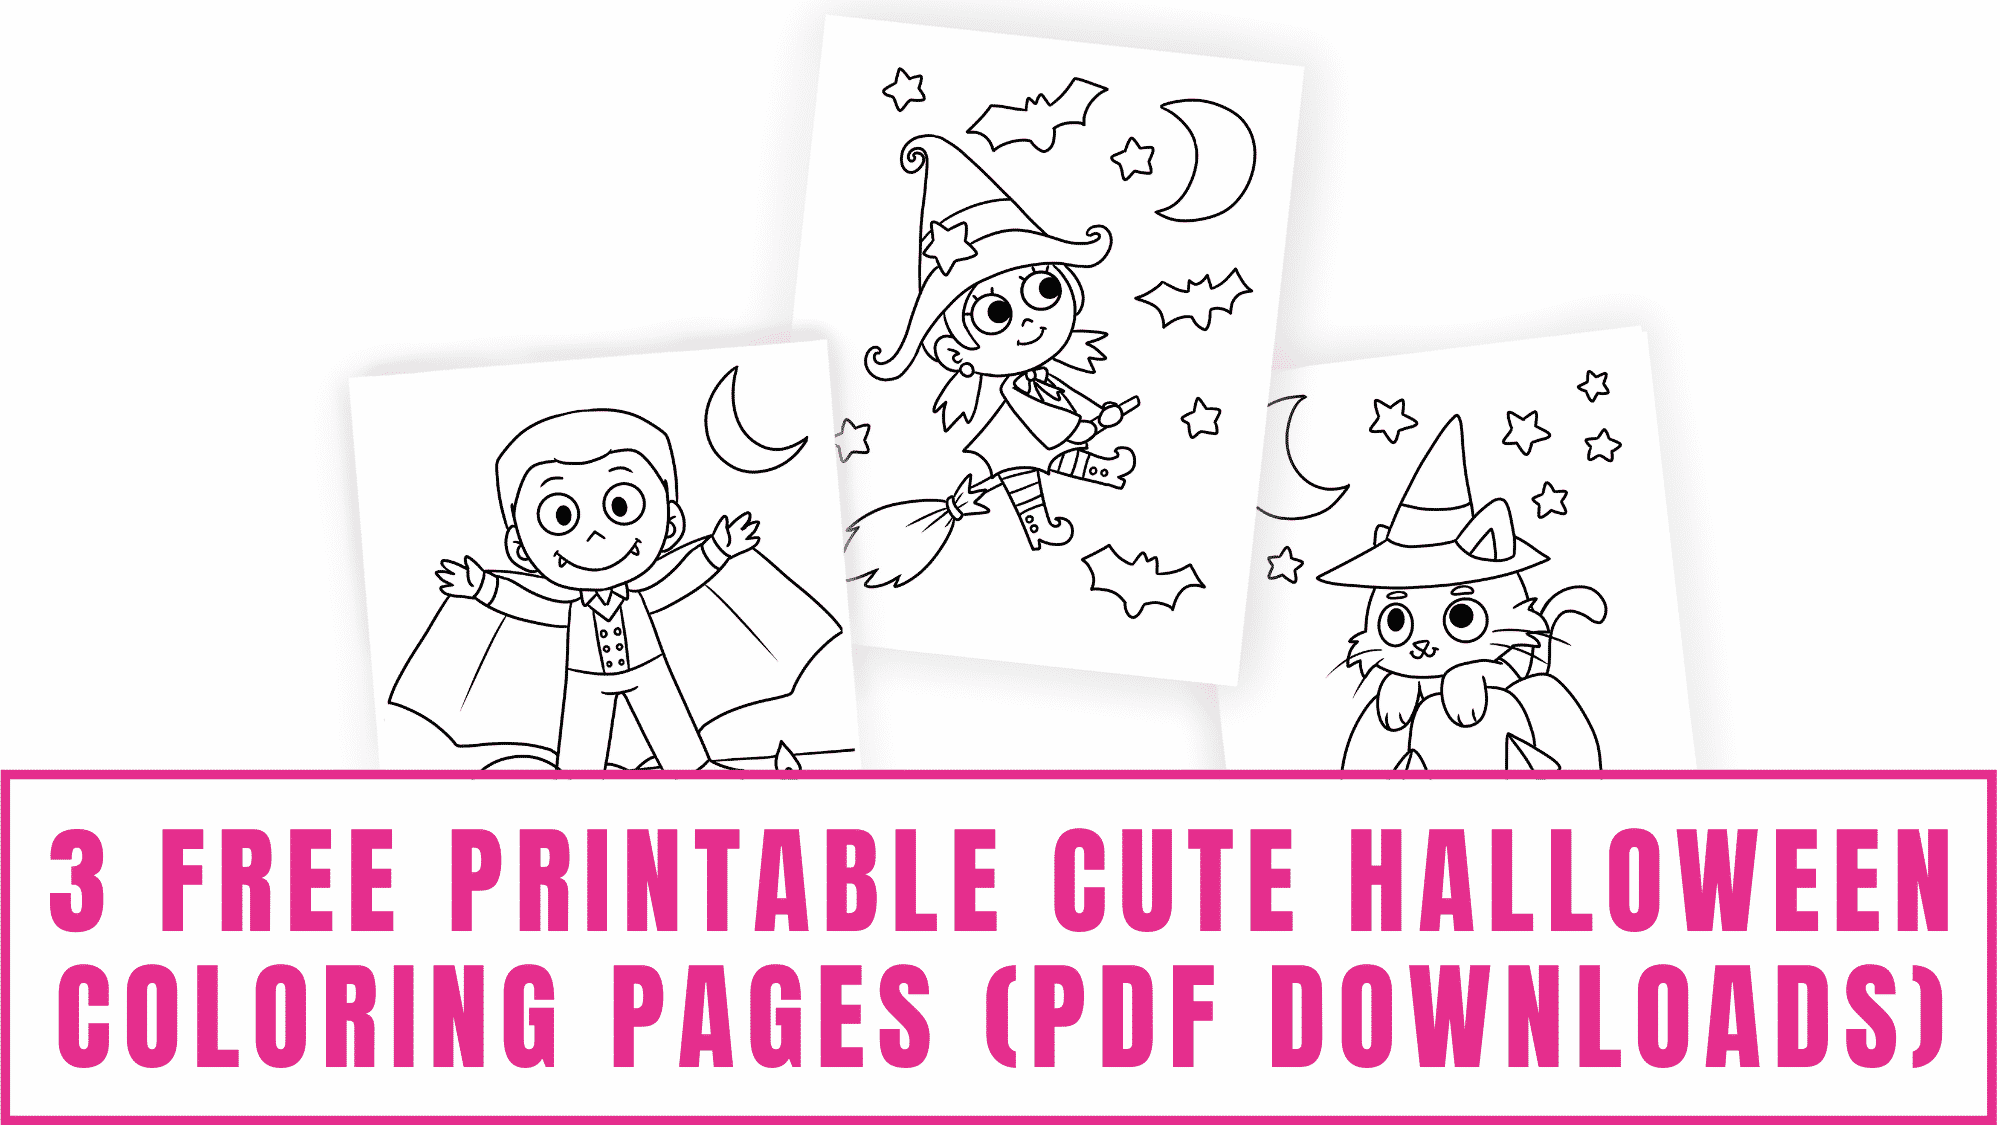 After your kid decorates these free printable cute Halloween coloring pages pdf downloads hang them proudly as a Halloween sign printable.